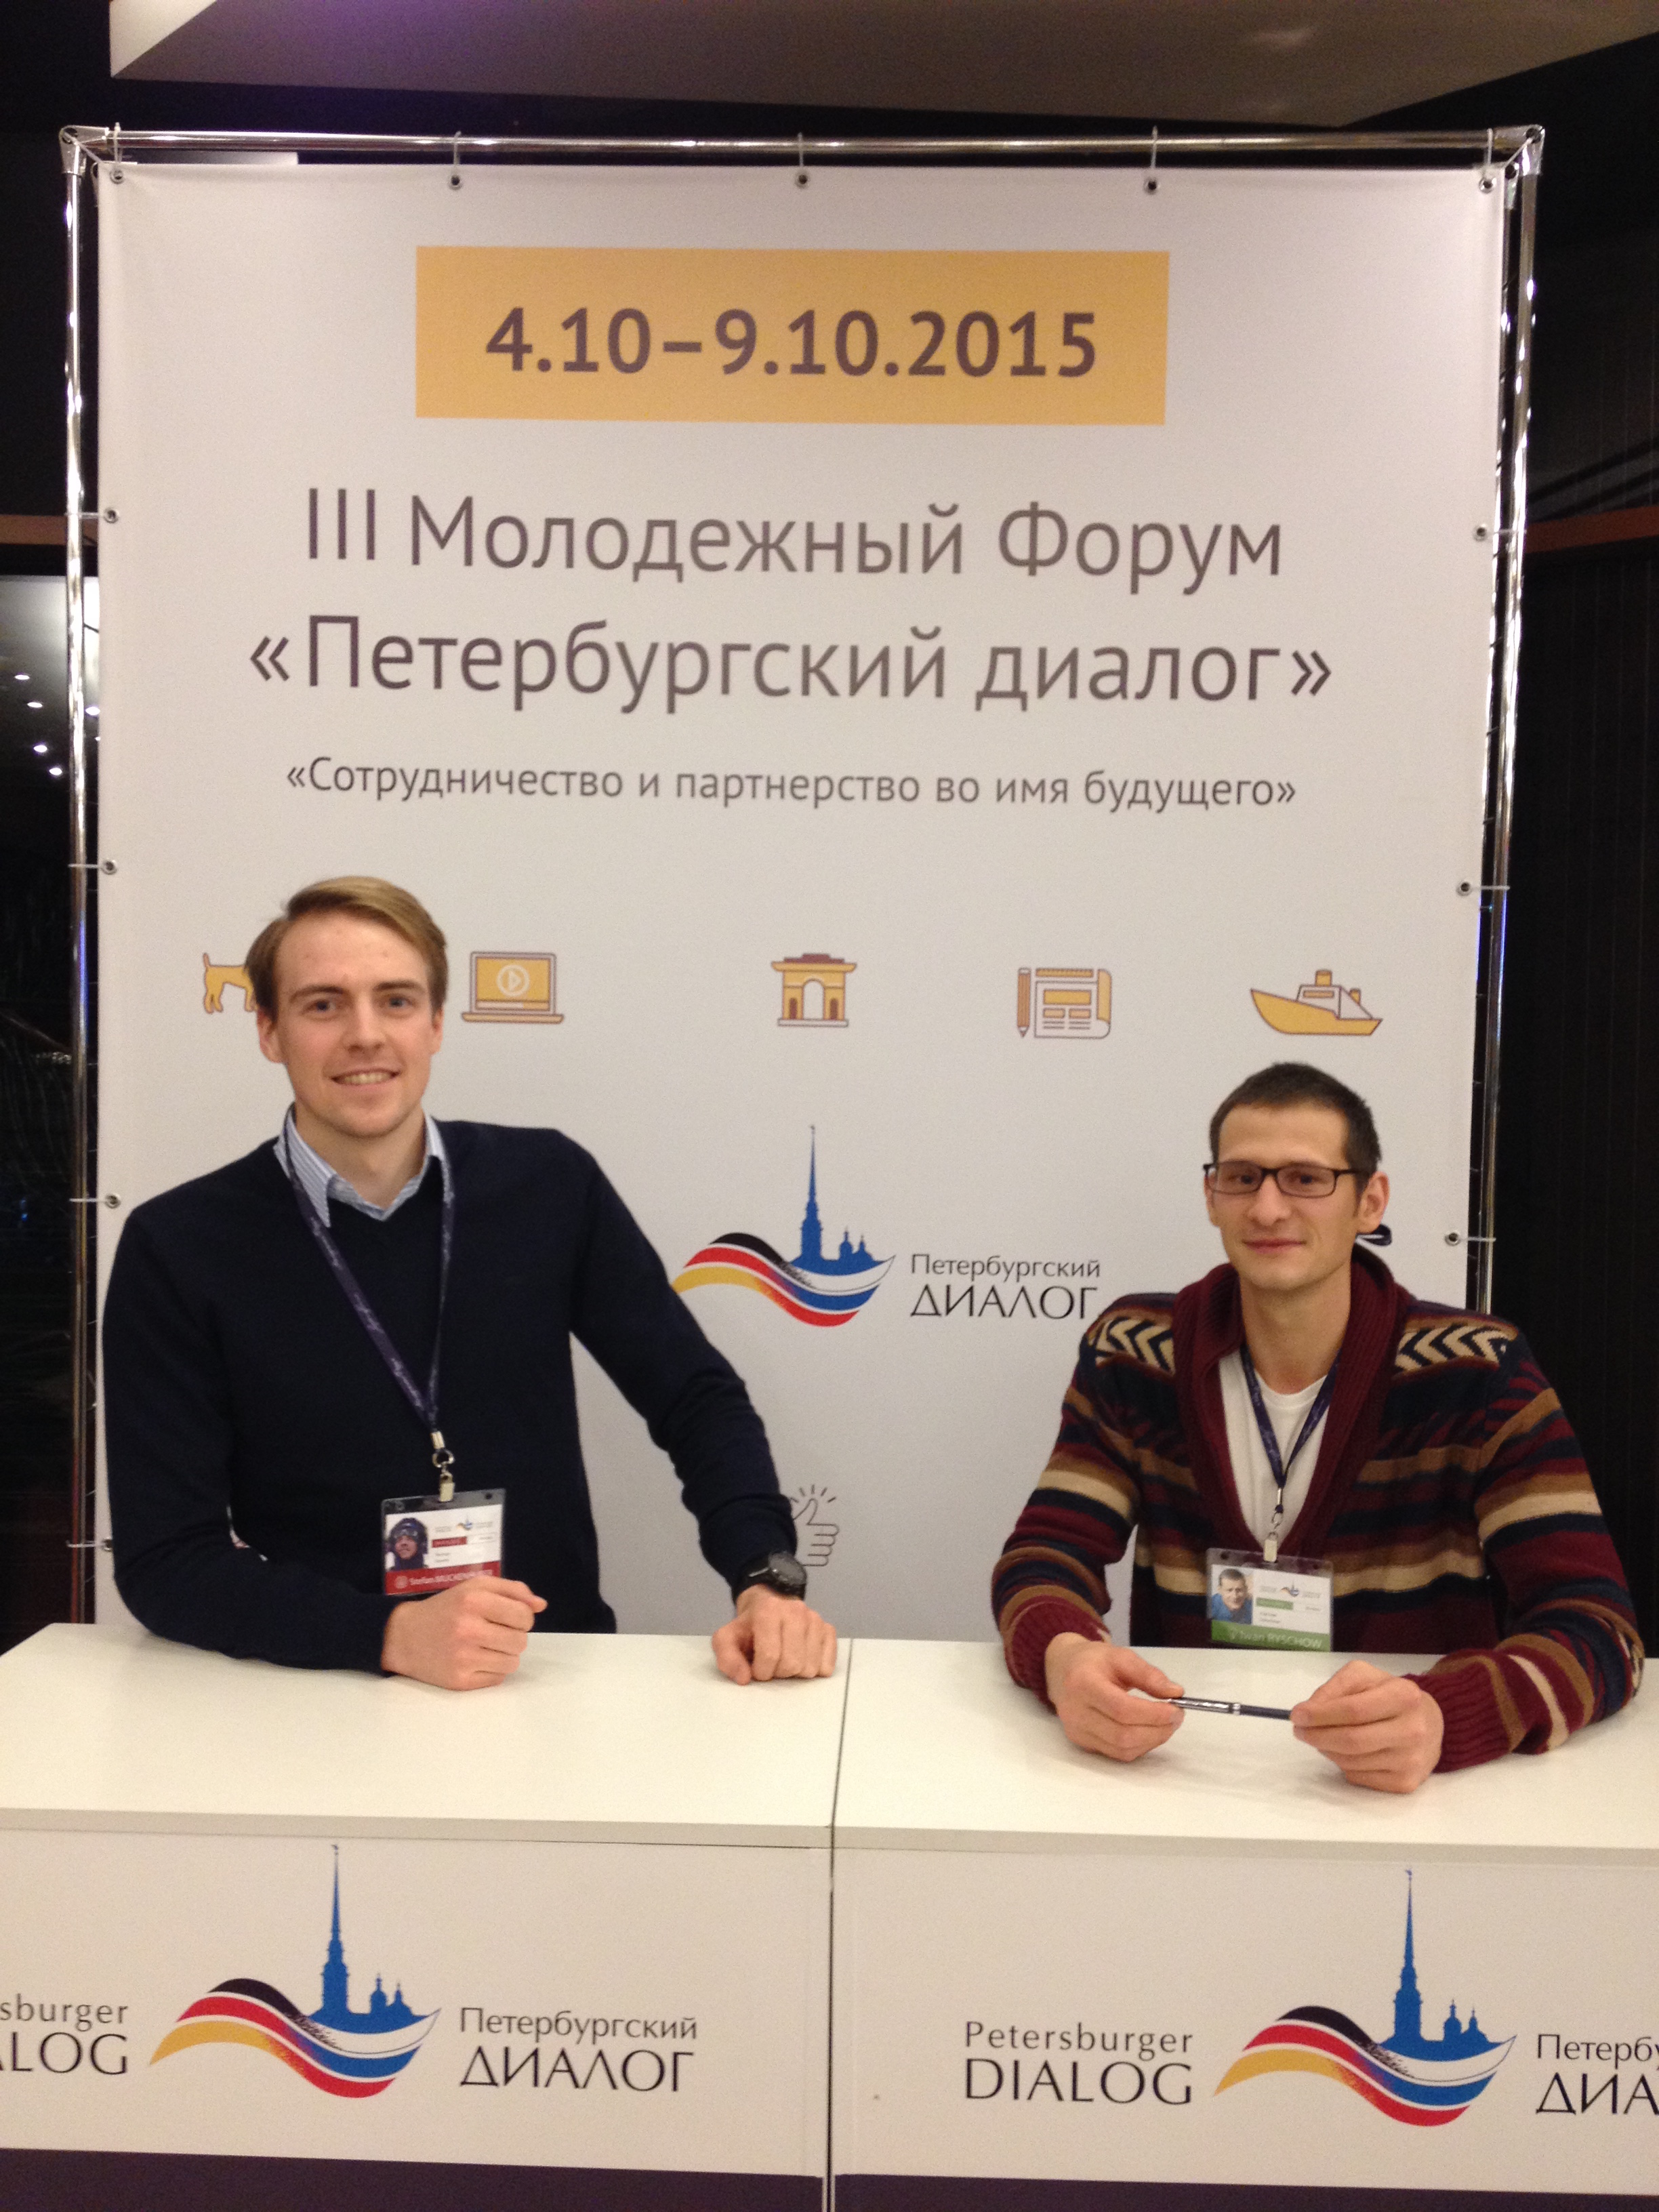 Stefan Muckenhuber (left) and Ivan Ruzhov at the Petersburger Dialog Youth Forum in Moscow.